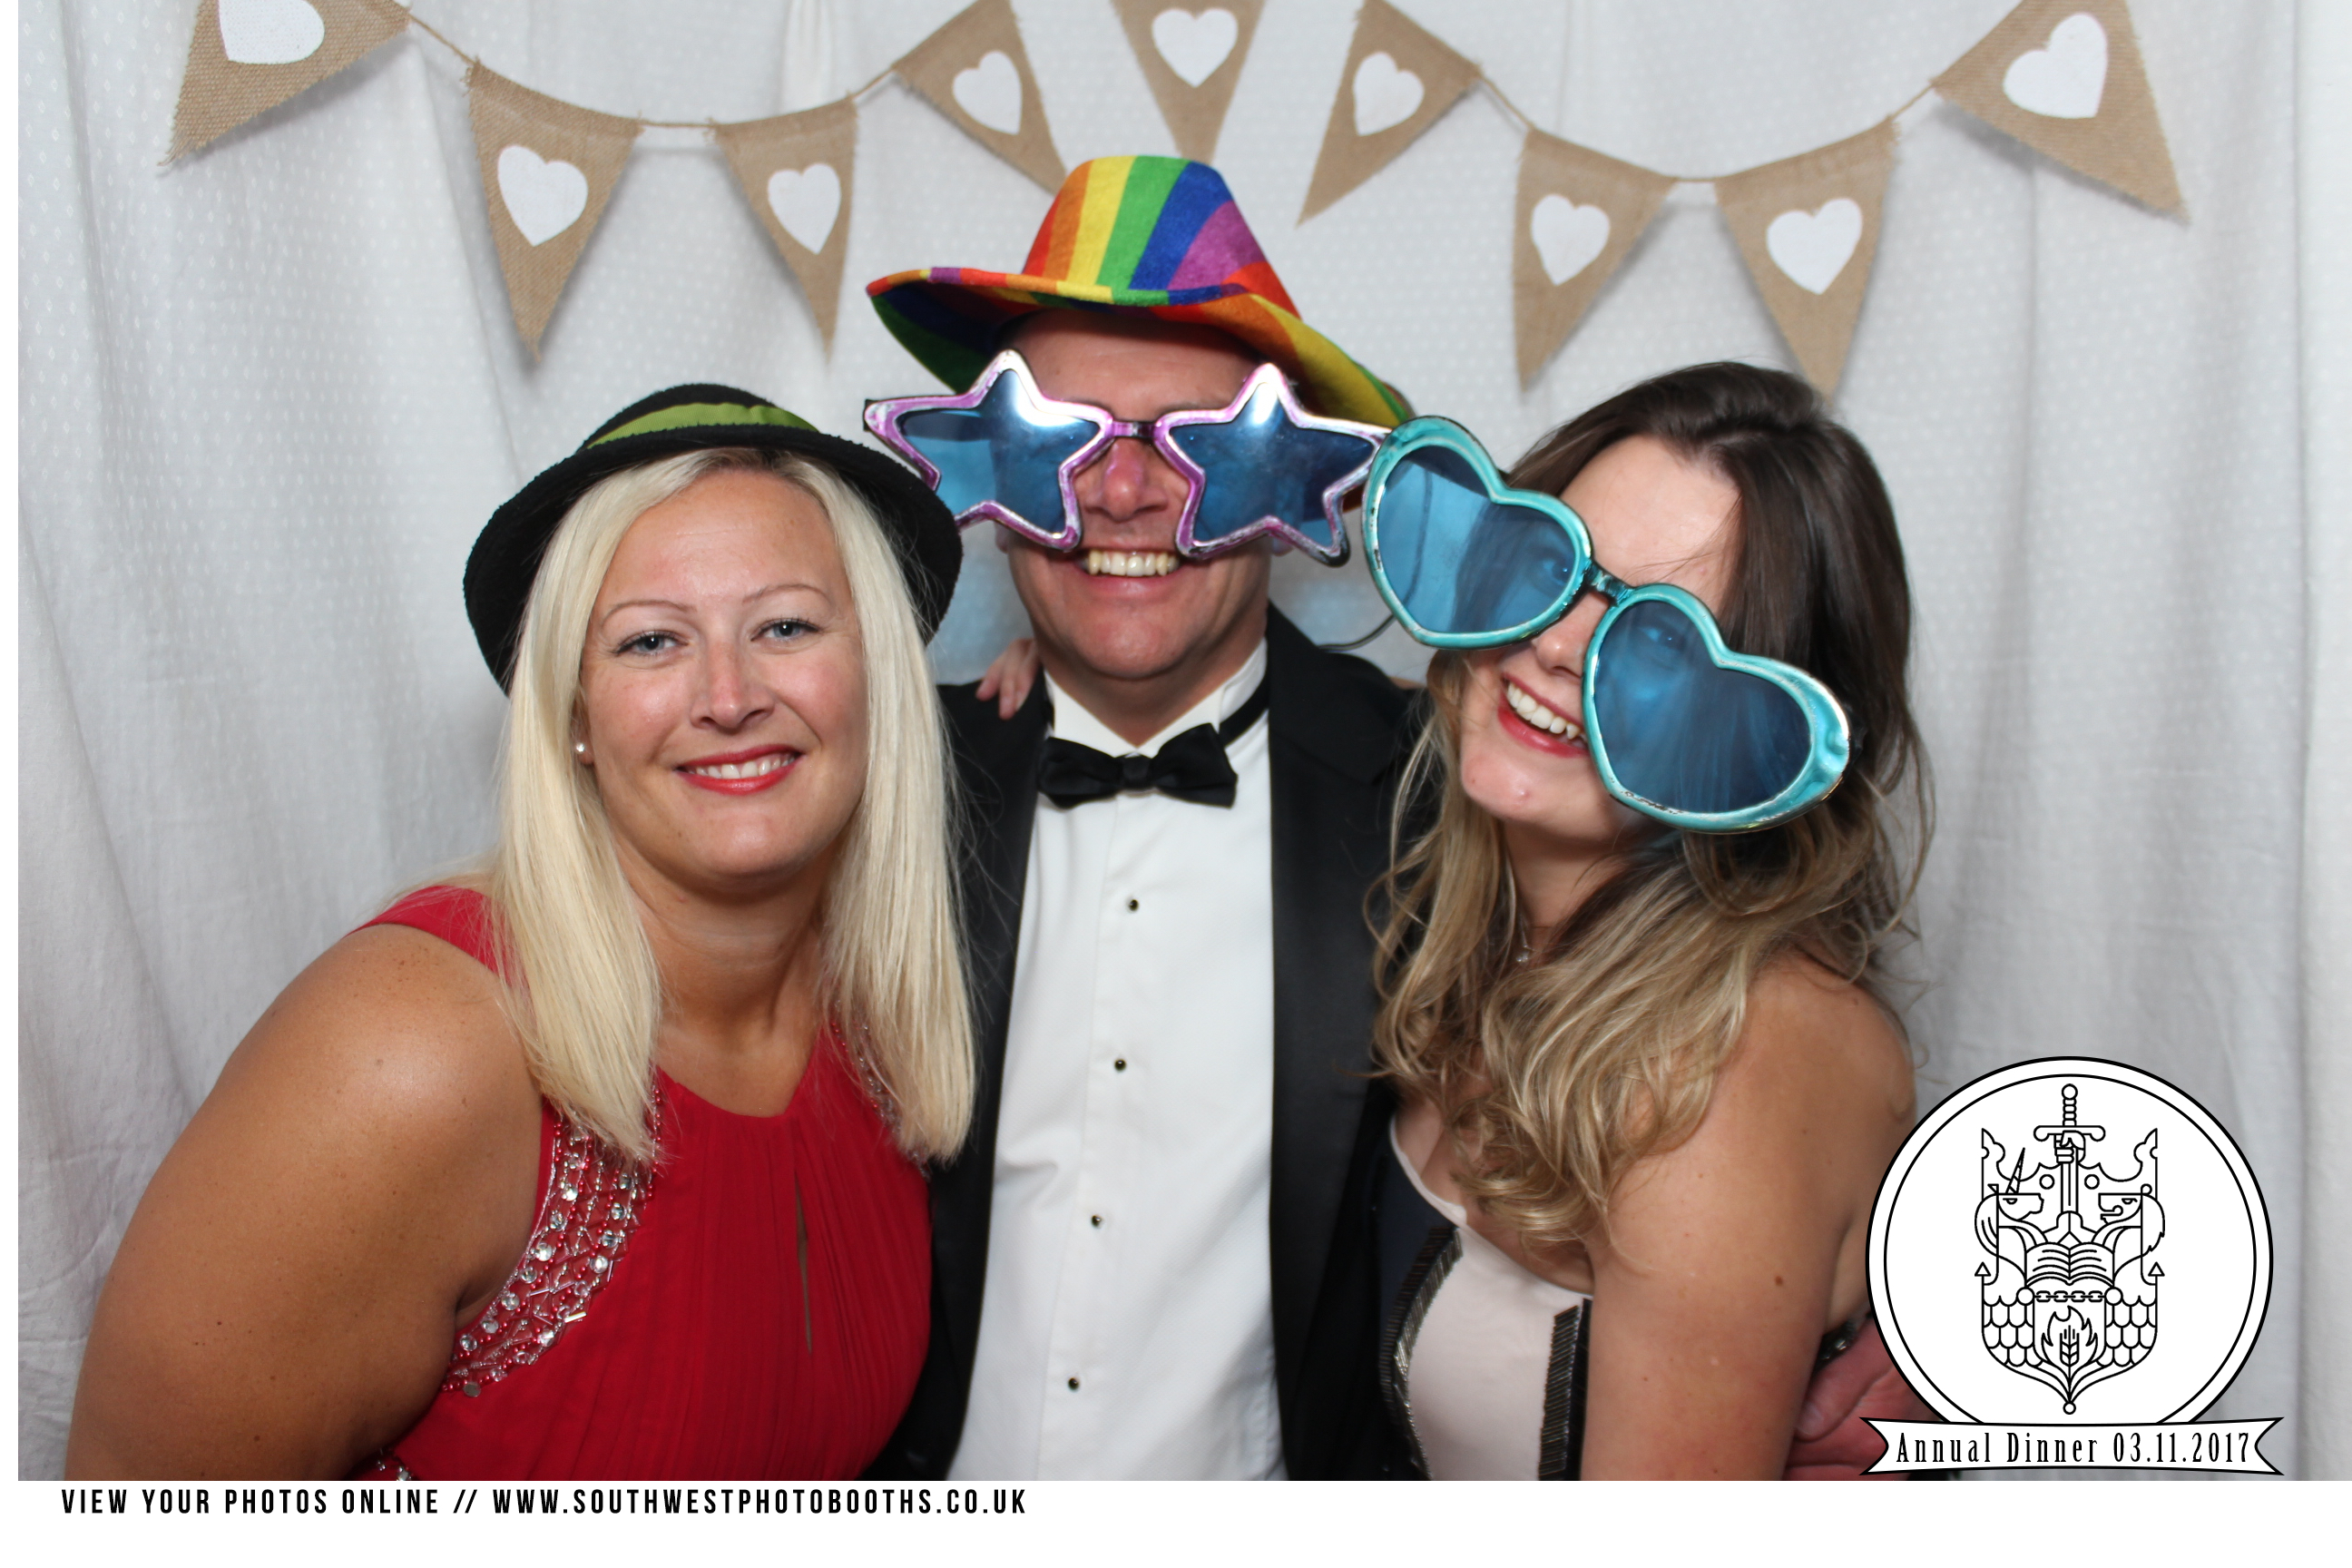 2017 Dinner, Photo Booth Pictures